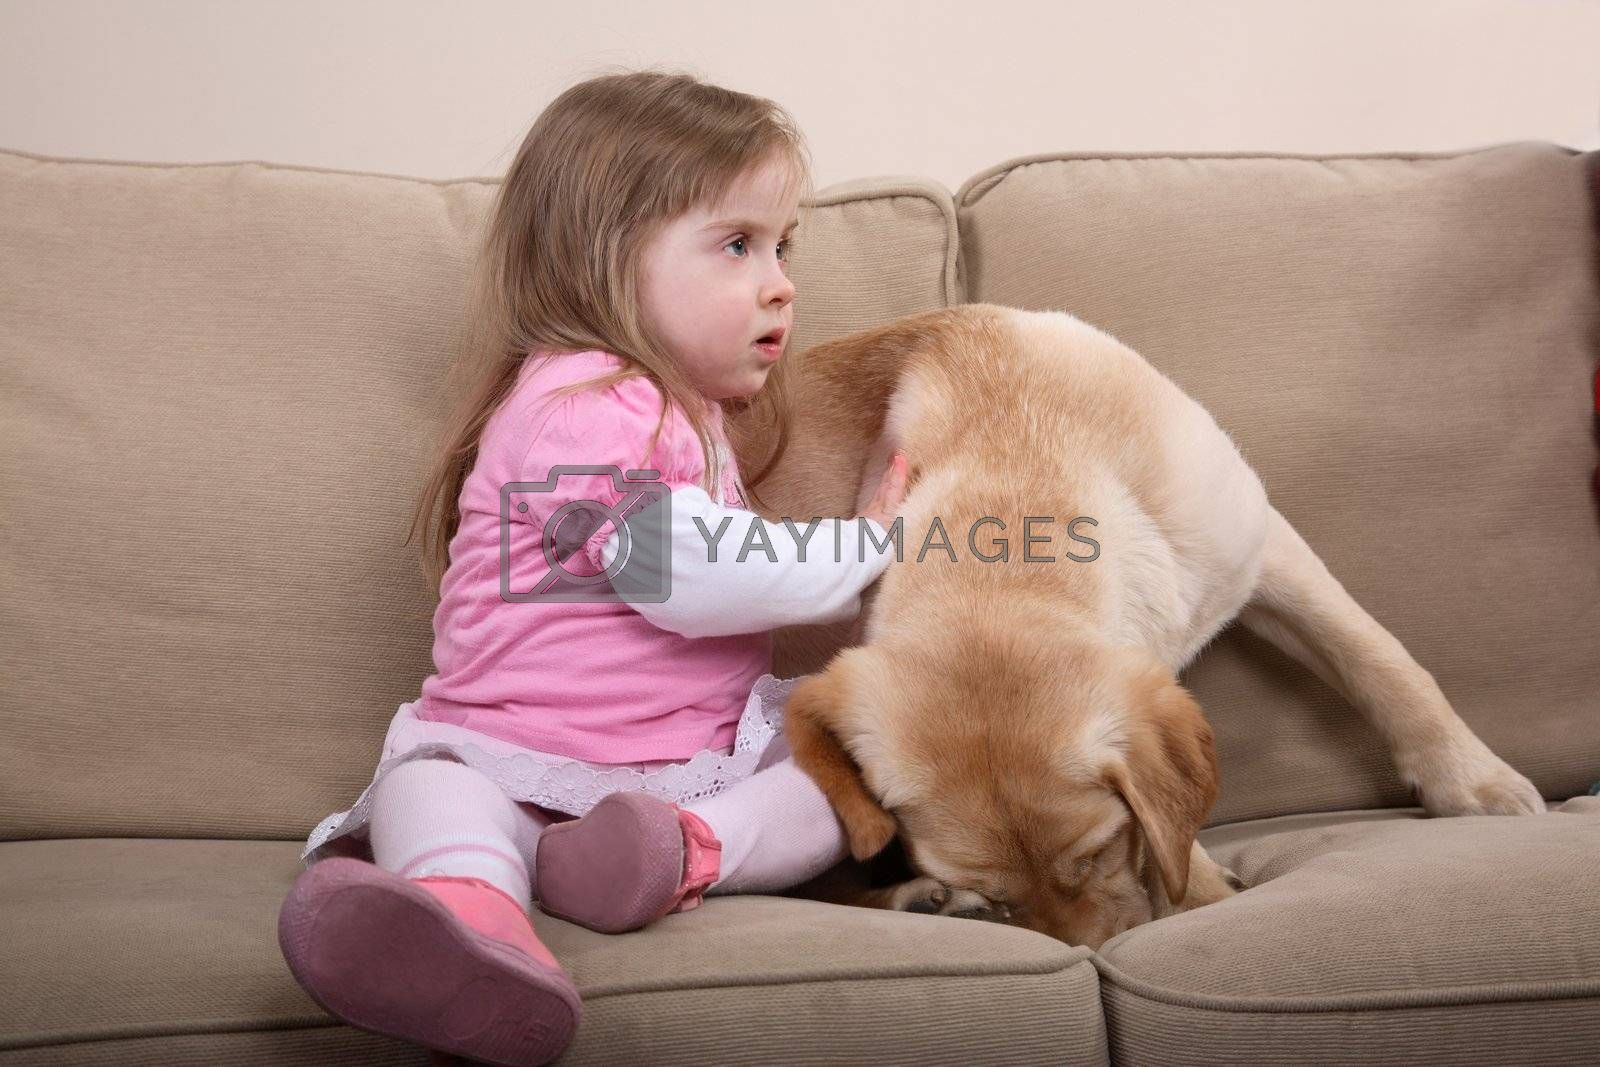 Therapy Dog and Little Girl by tomaszm